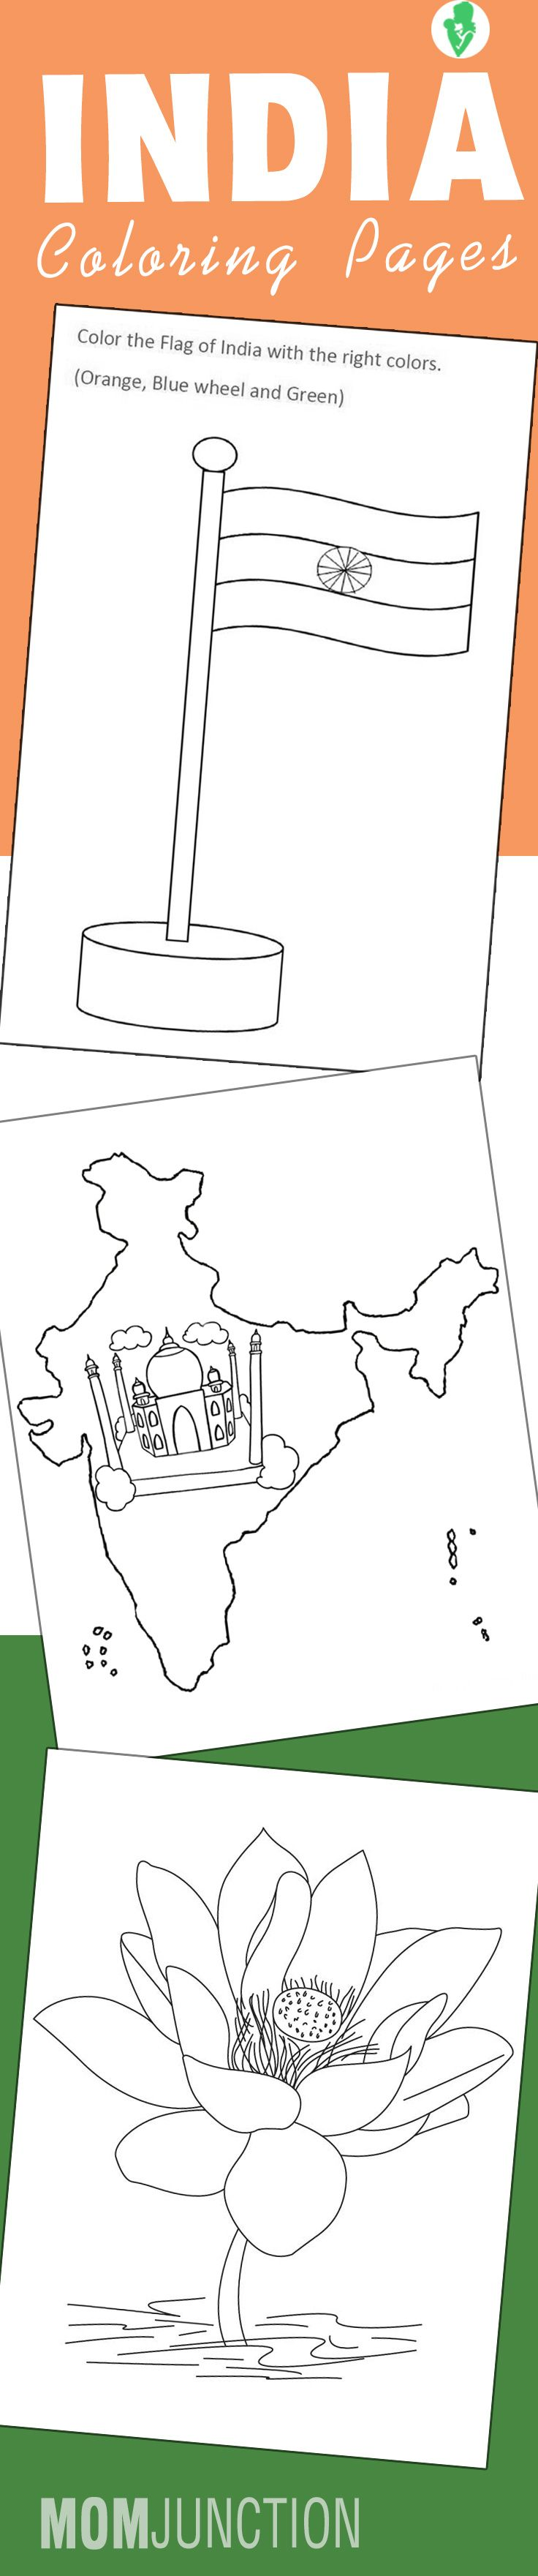 Top 10 Free Printable India Coloring Pages Online | India, Learning ...